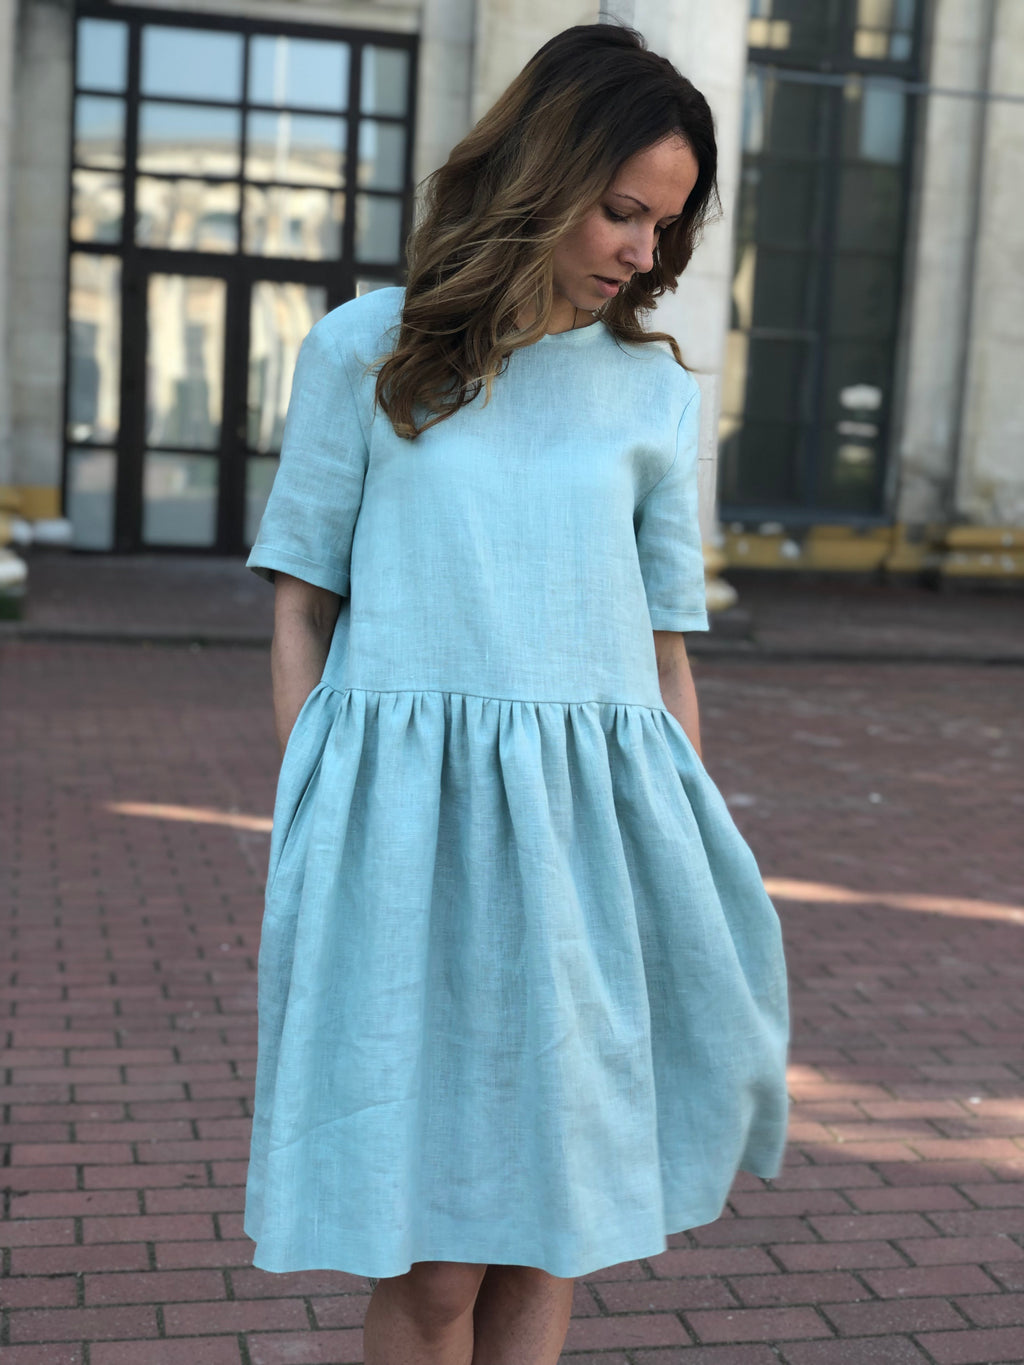 Linen Dress with Pockets - Short Sleeves Linen Dress - Oversize Linen Dress